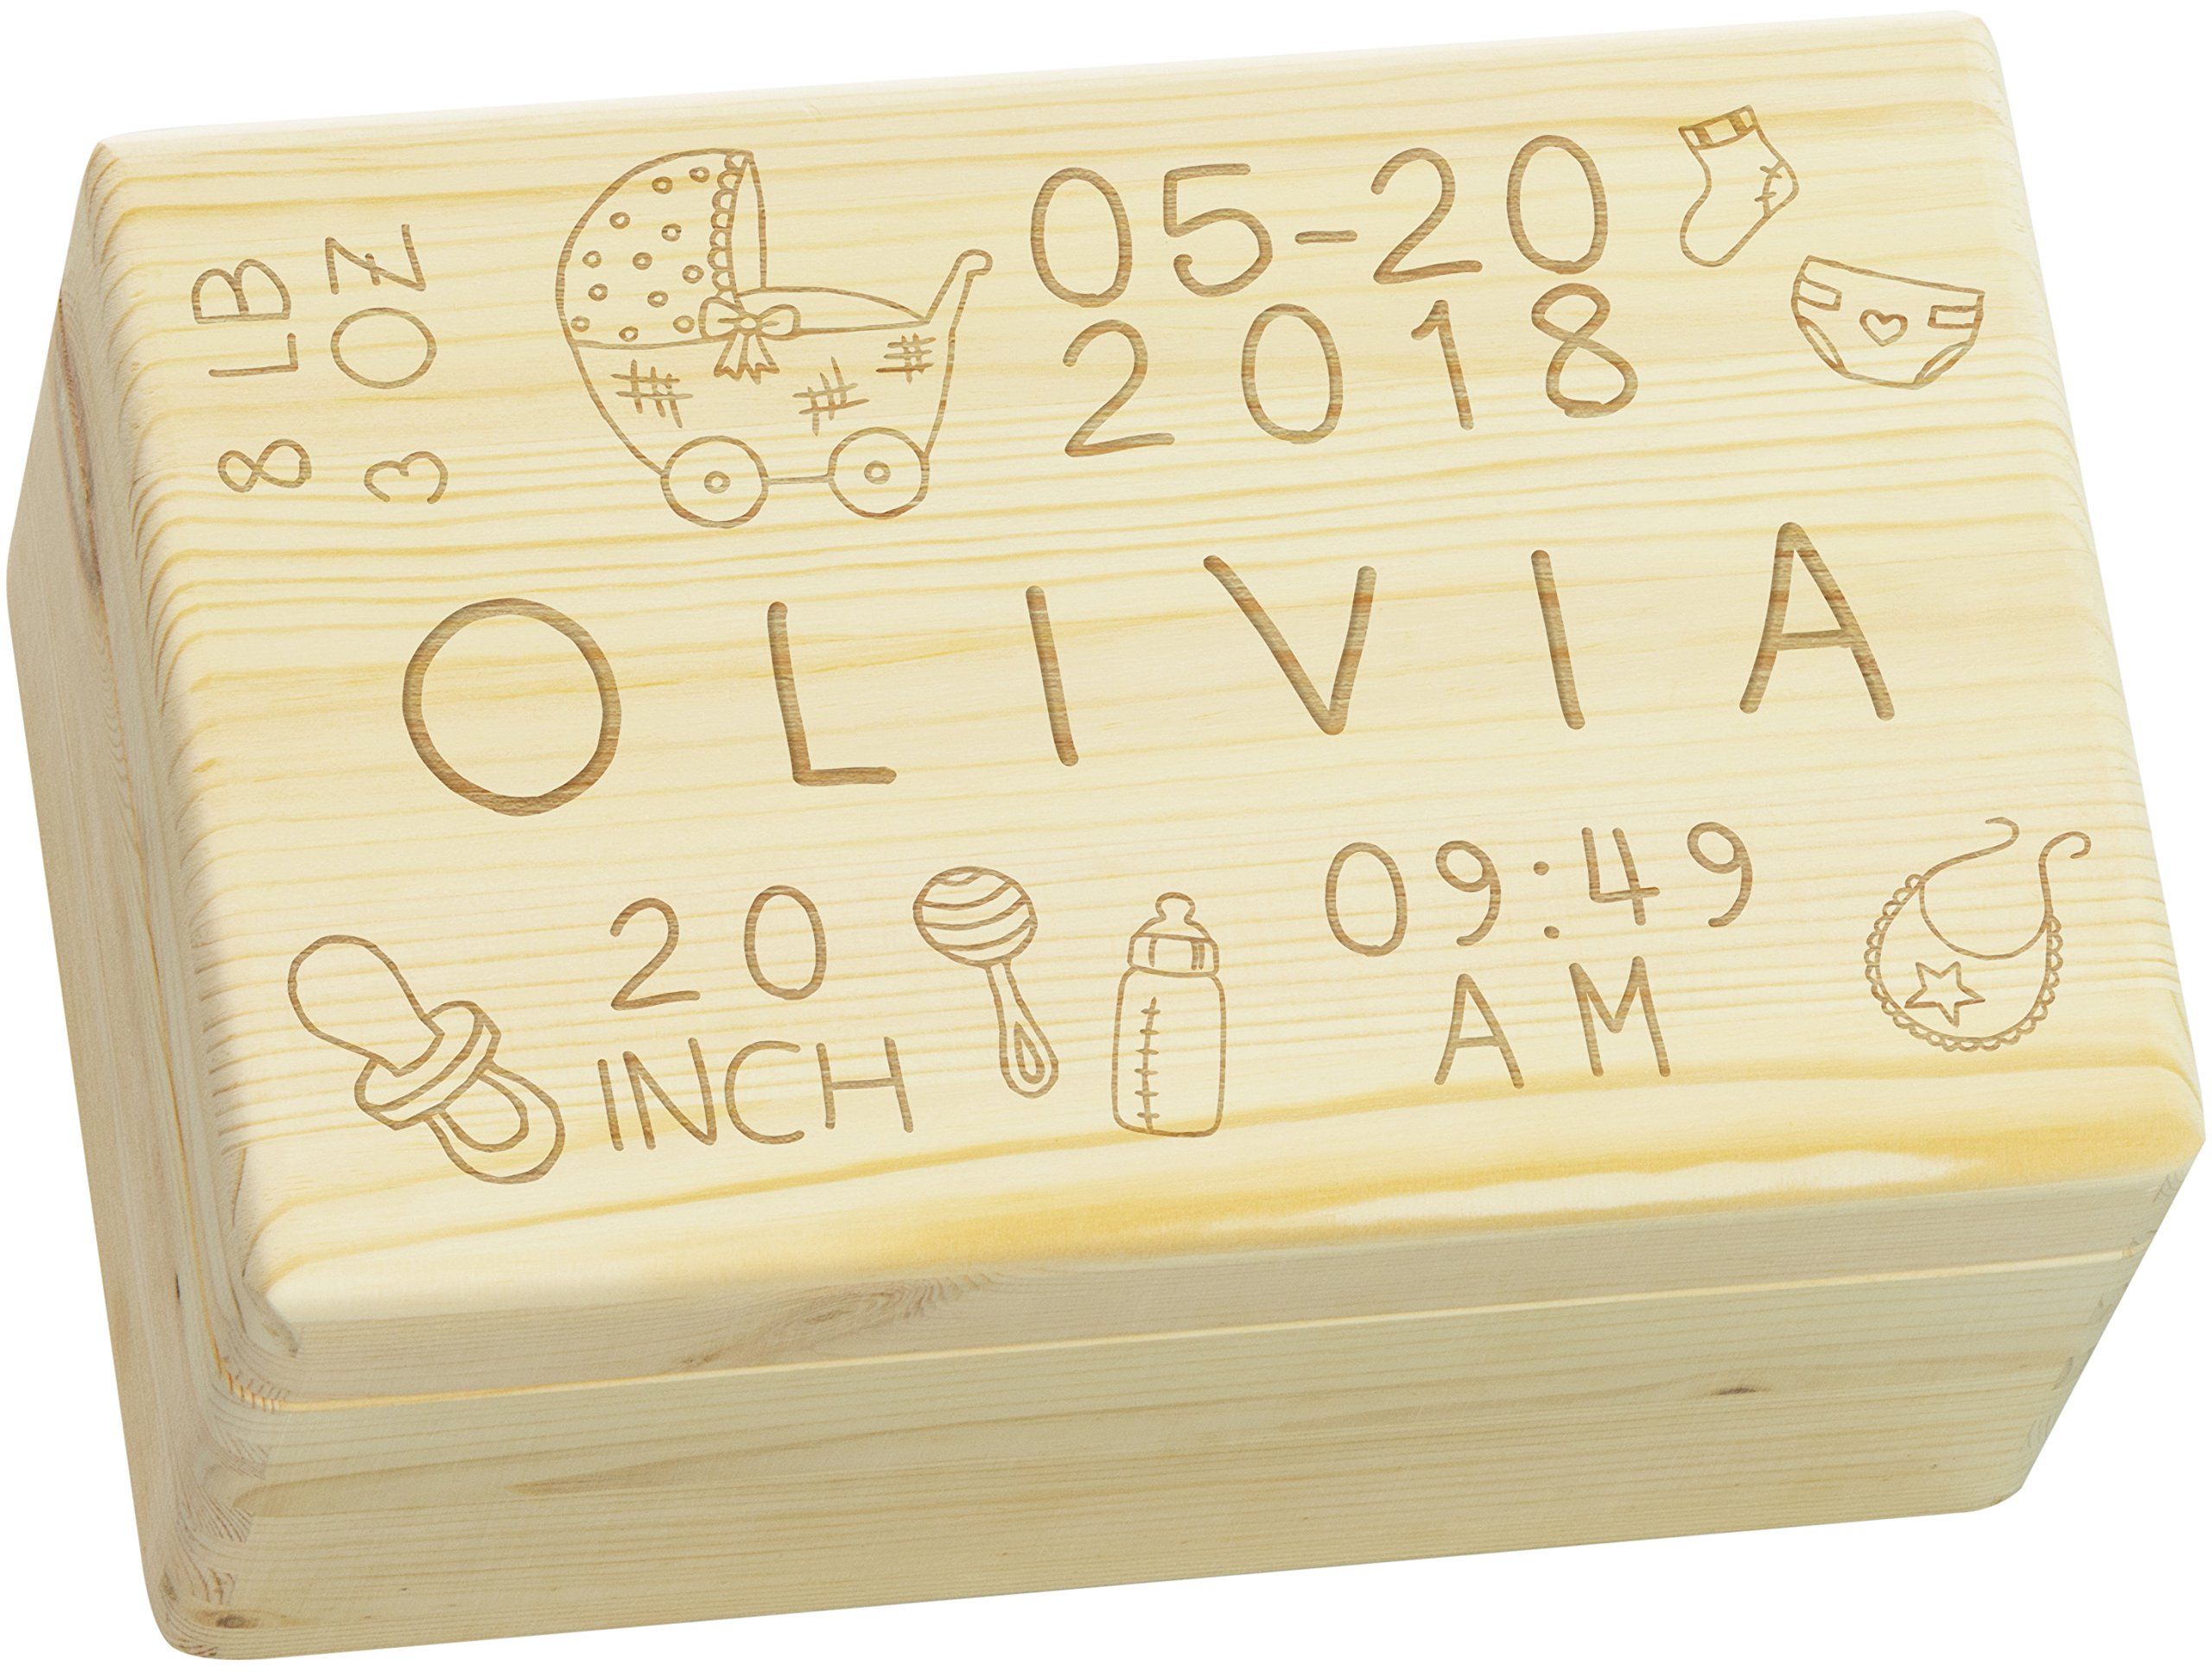 LAUBLUST Engraved Wooden Memory Box - Size L, 12x8x6in - ❤️ Personalized ❤️ Baby Keepsake Box - Rattle Design | Natural Wood - Made in Germany